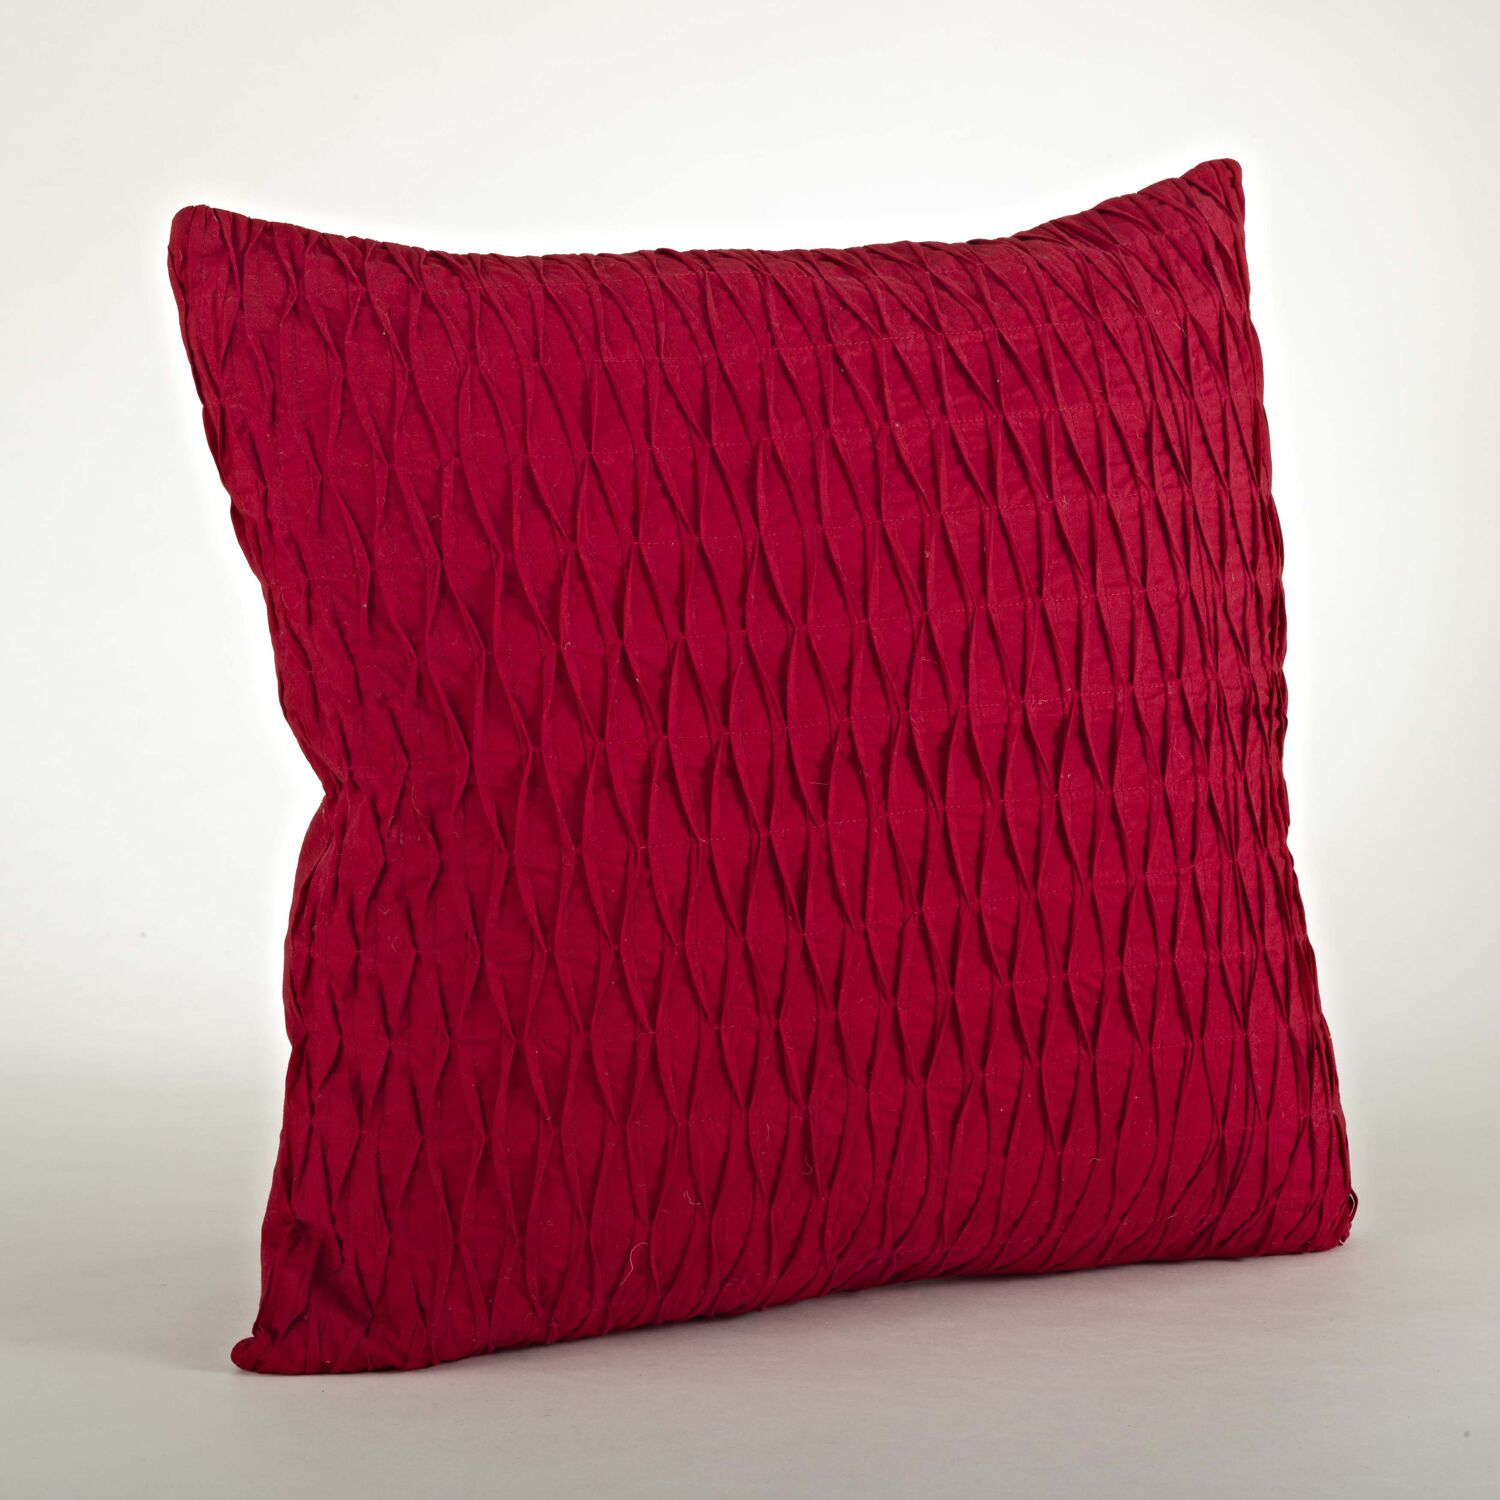 Malawi Diamond Pleated Cotton Throw Pillow